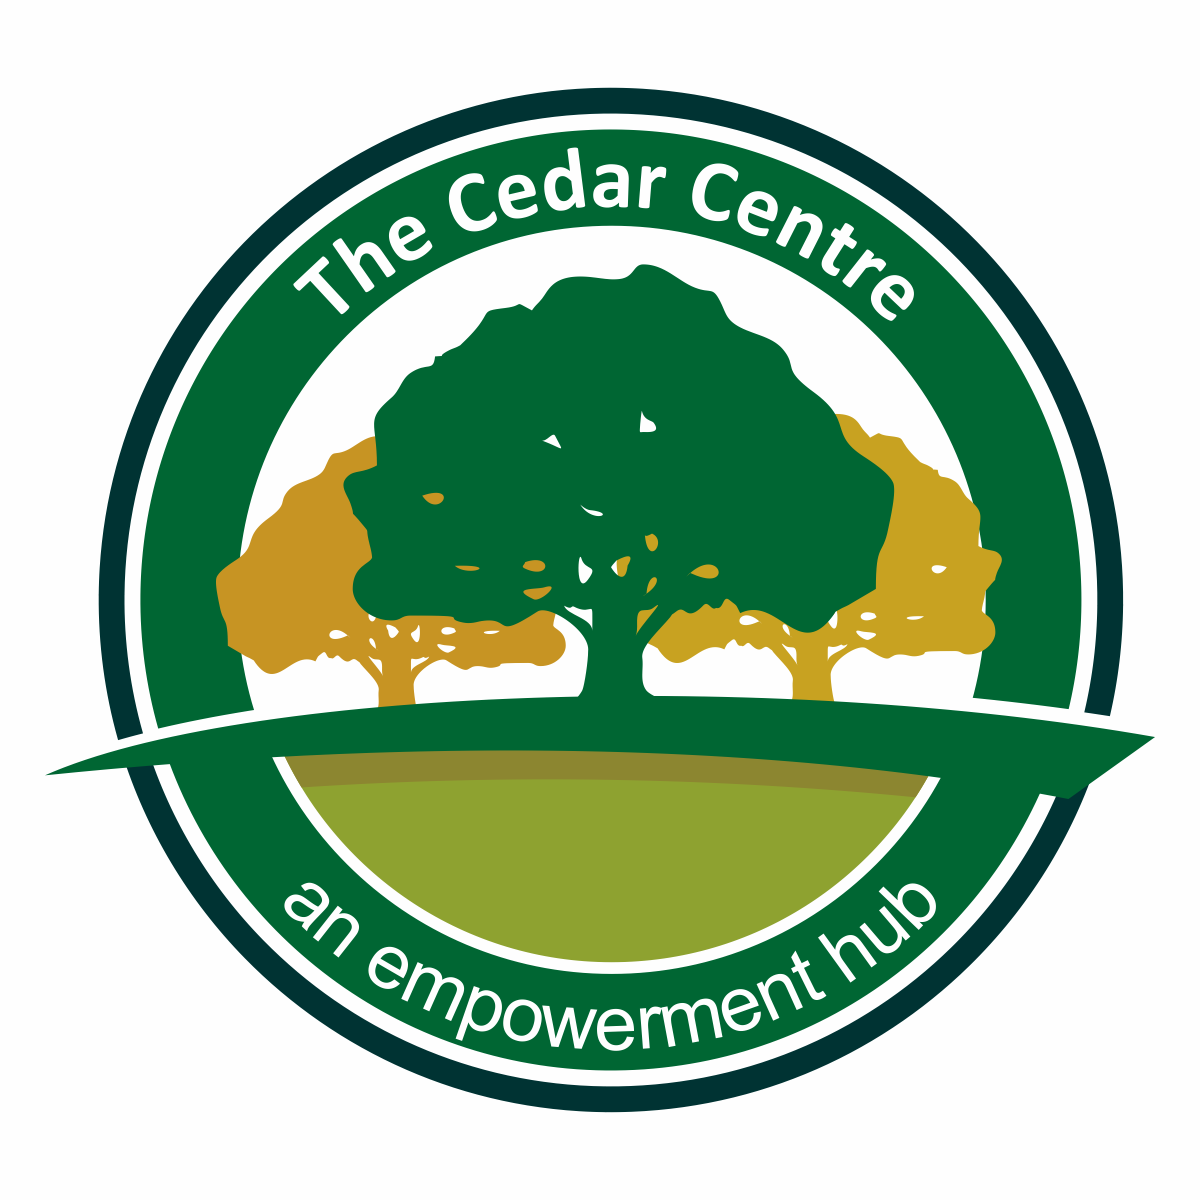 Cedar stem entrepreneurship h ibm bluemix training Cedar credit